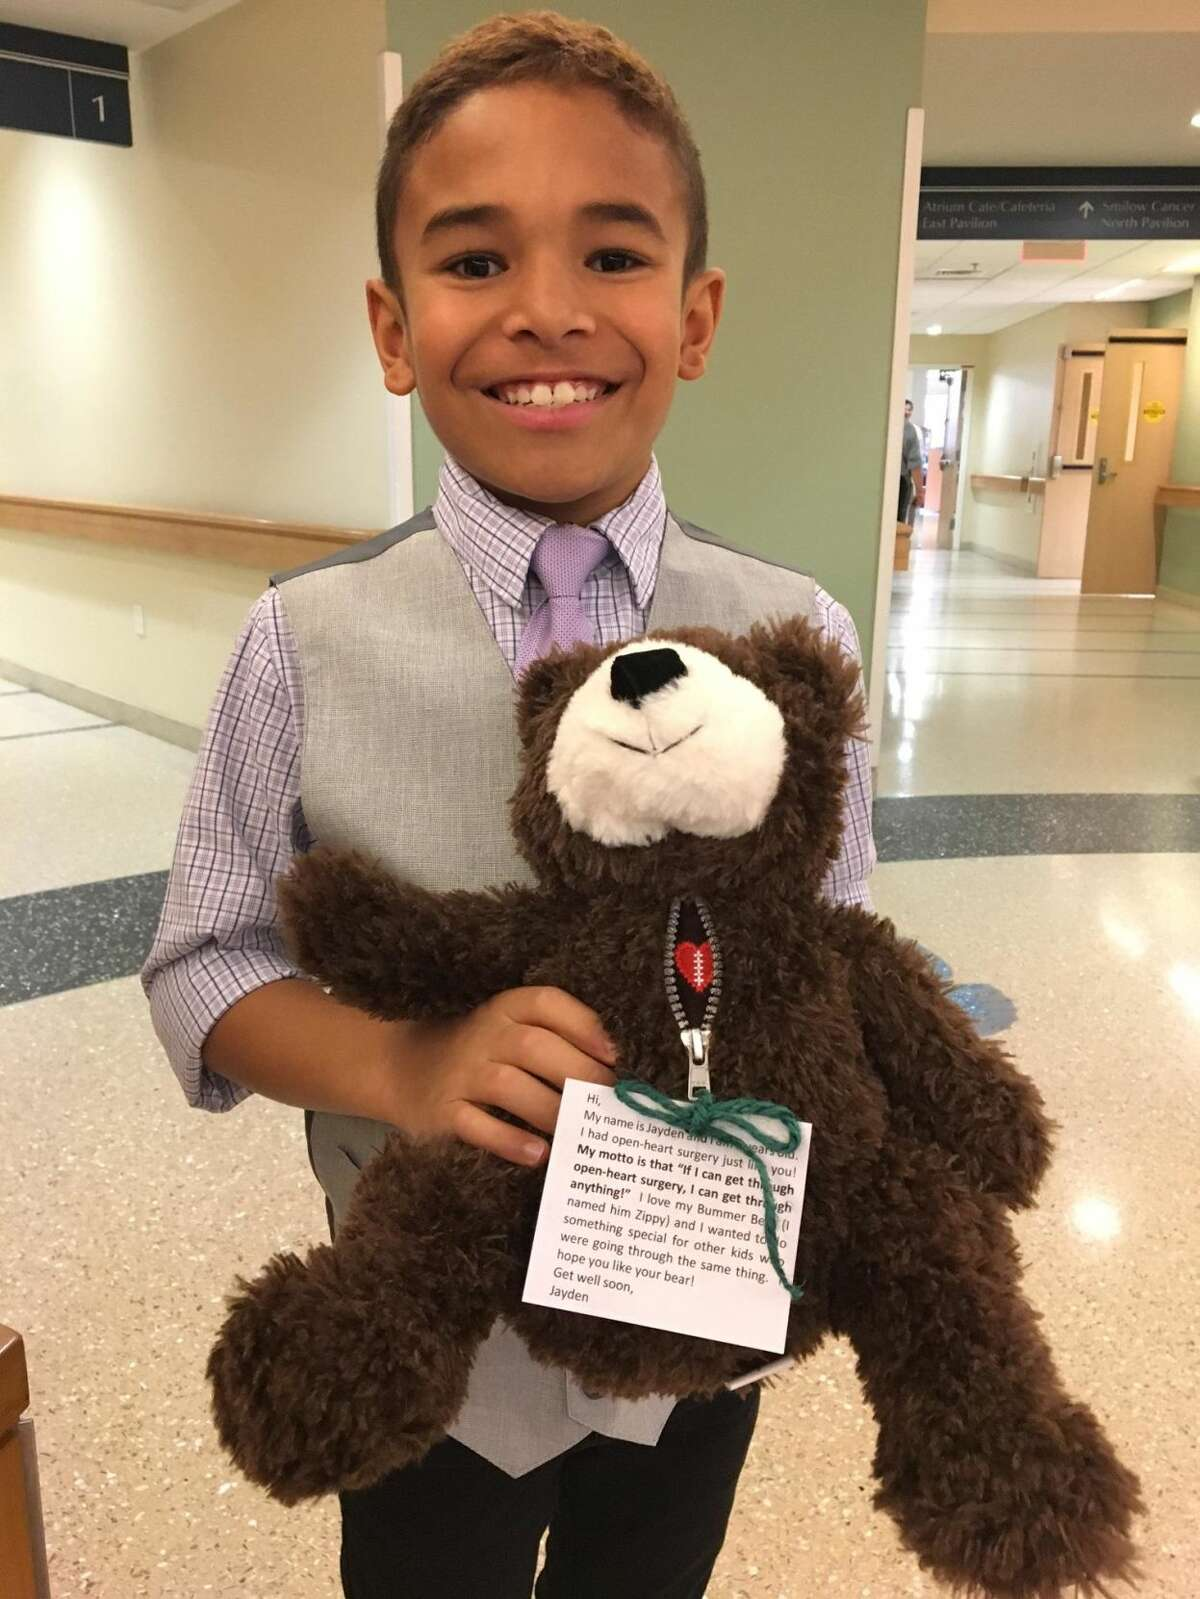 Derby resident Jayden Cooper, 9, holds one of the donated teddy bears.